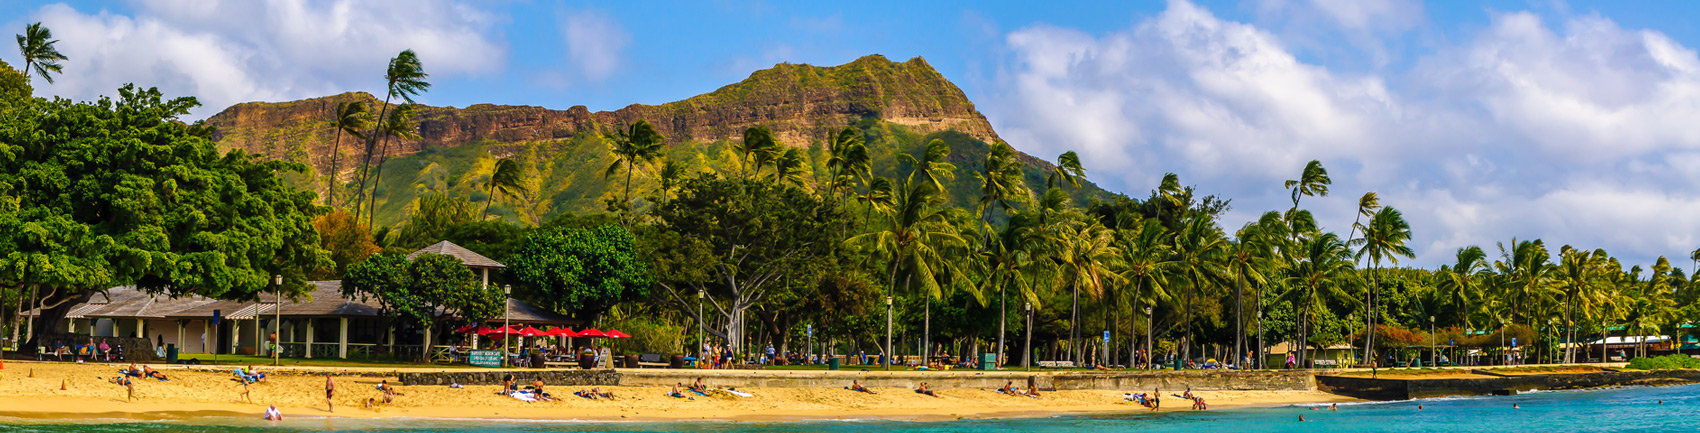 things-to-do-in-oahu-header-1700x433.jpg